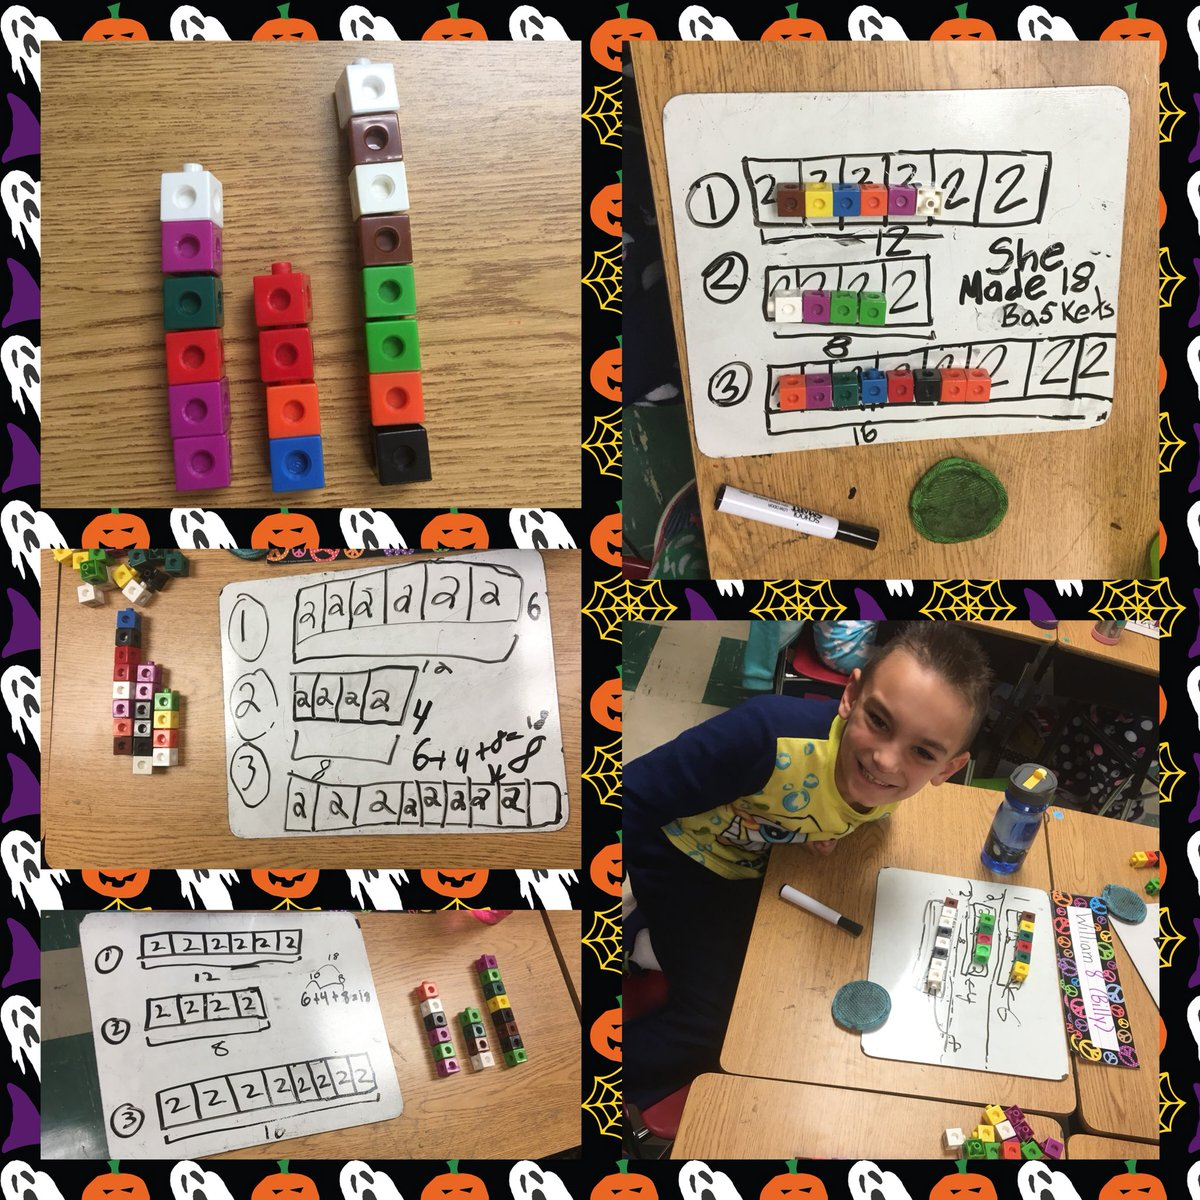 Mallory reiber on twitter we learned how to turn a traditional mallory reiber on twitter we learned how to turn a traditional tape diagram into a vertical tape diagram the cubes came in handy ccuart Images